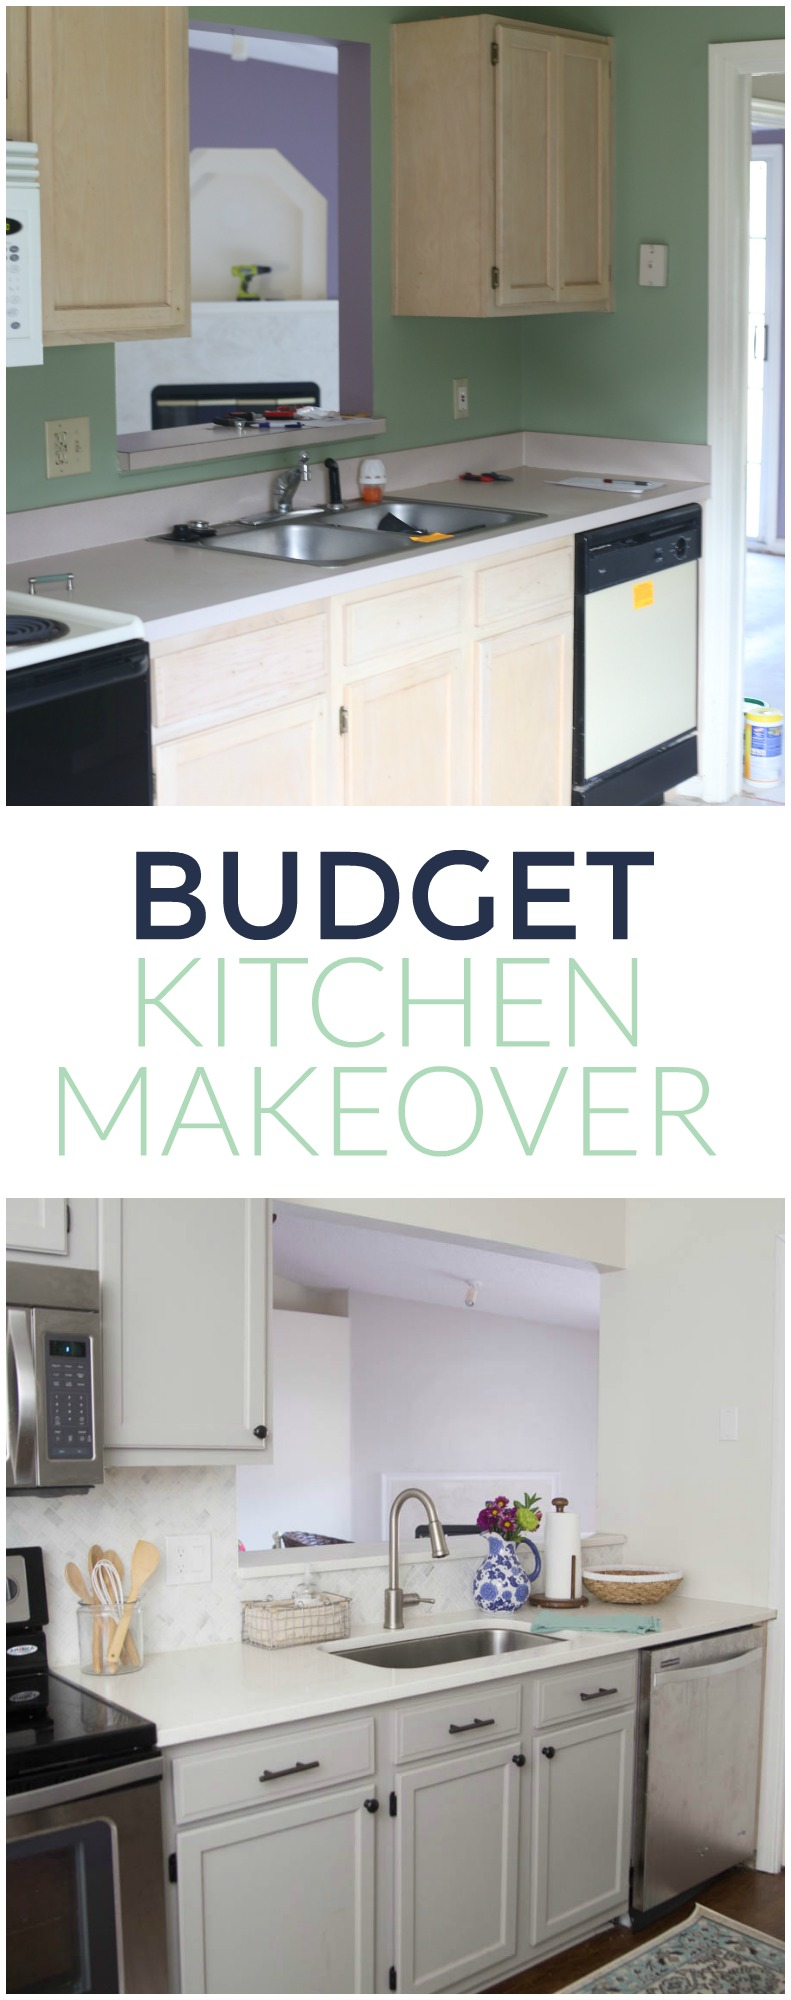 Budget Friendly Kitchen Makeover with painted cabinets. Love this method of painting cabinets!